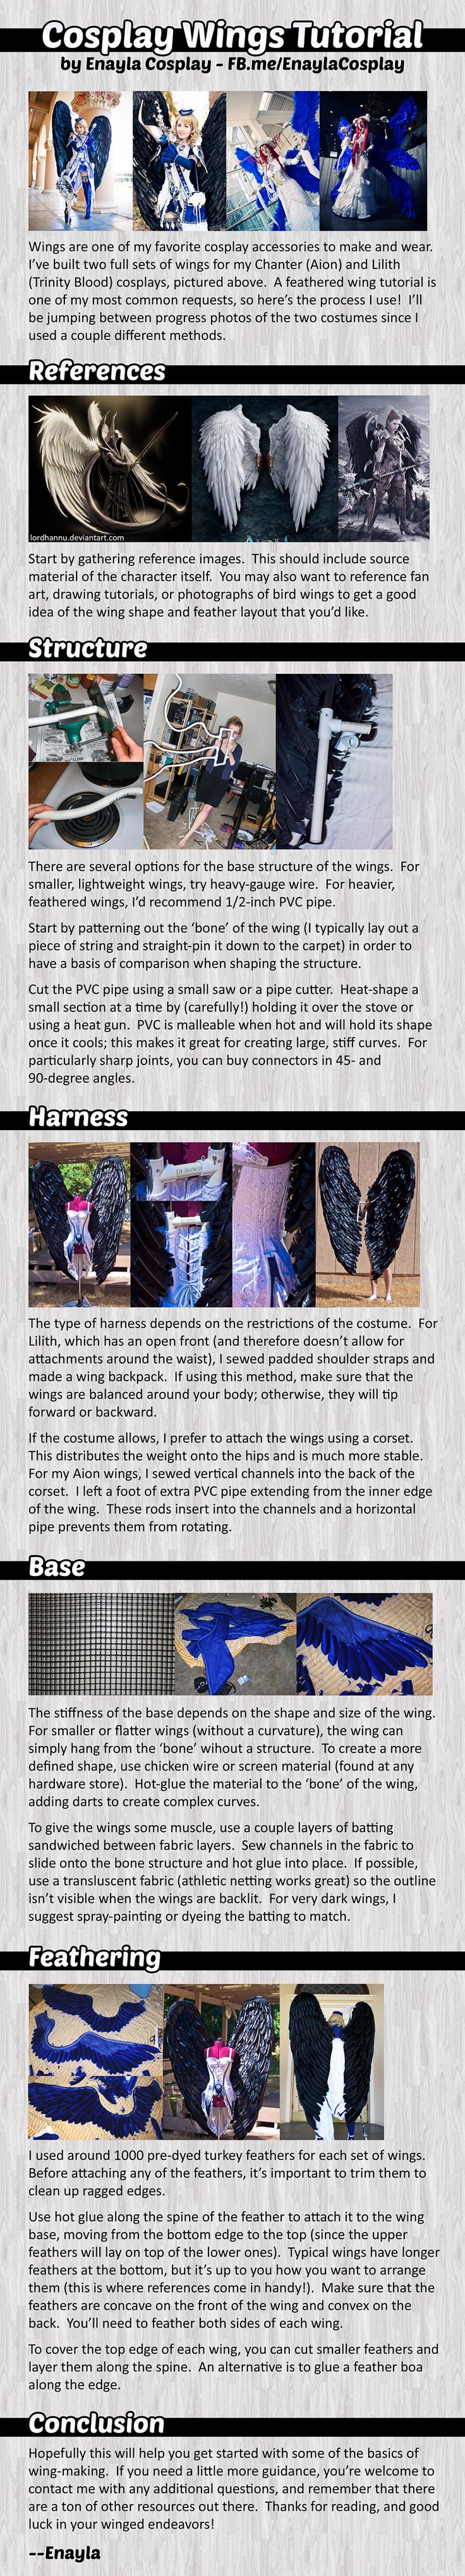 Cosplay Wings Tutorial by elliria.deviantart.com on @deviantART